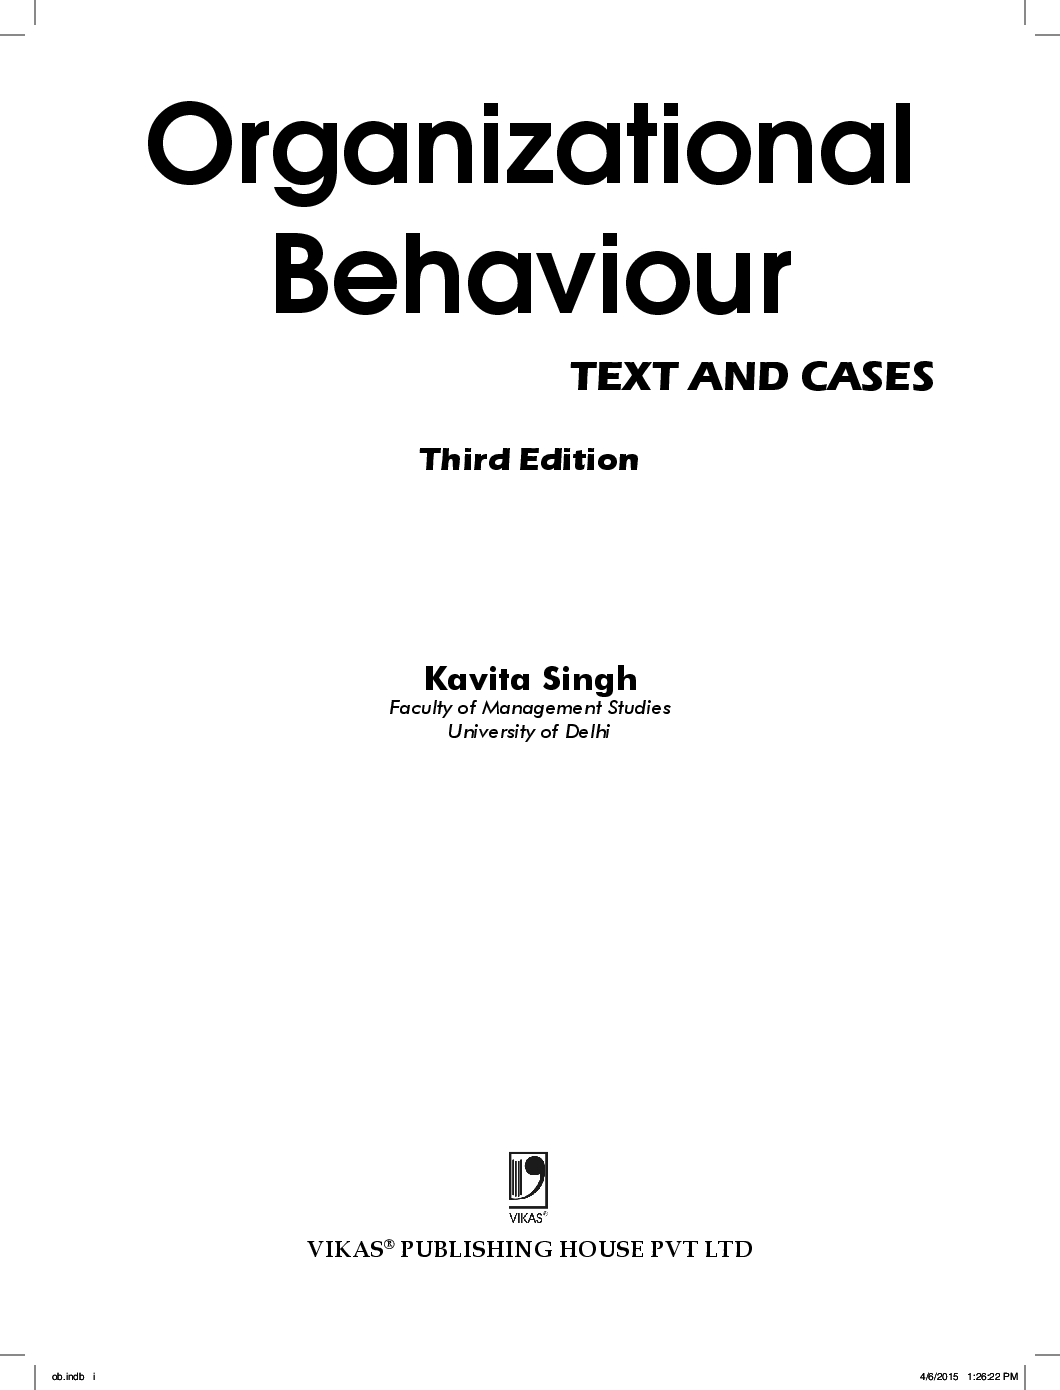 Download Organizational Behaviour: Text And Cases by